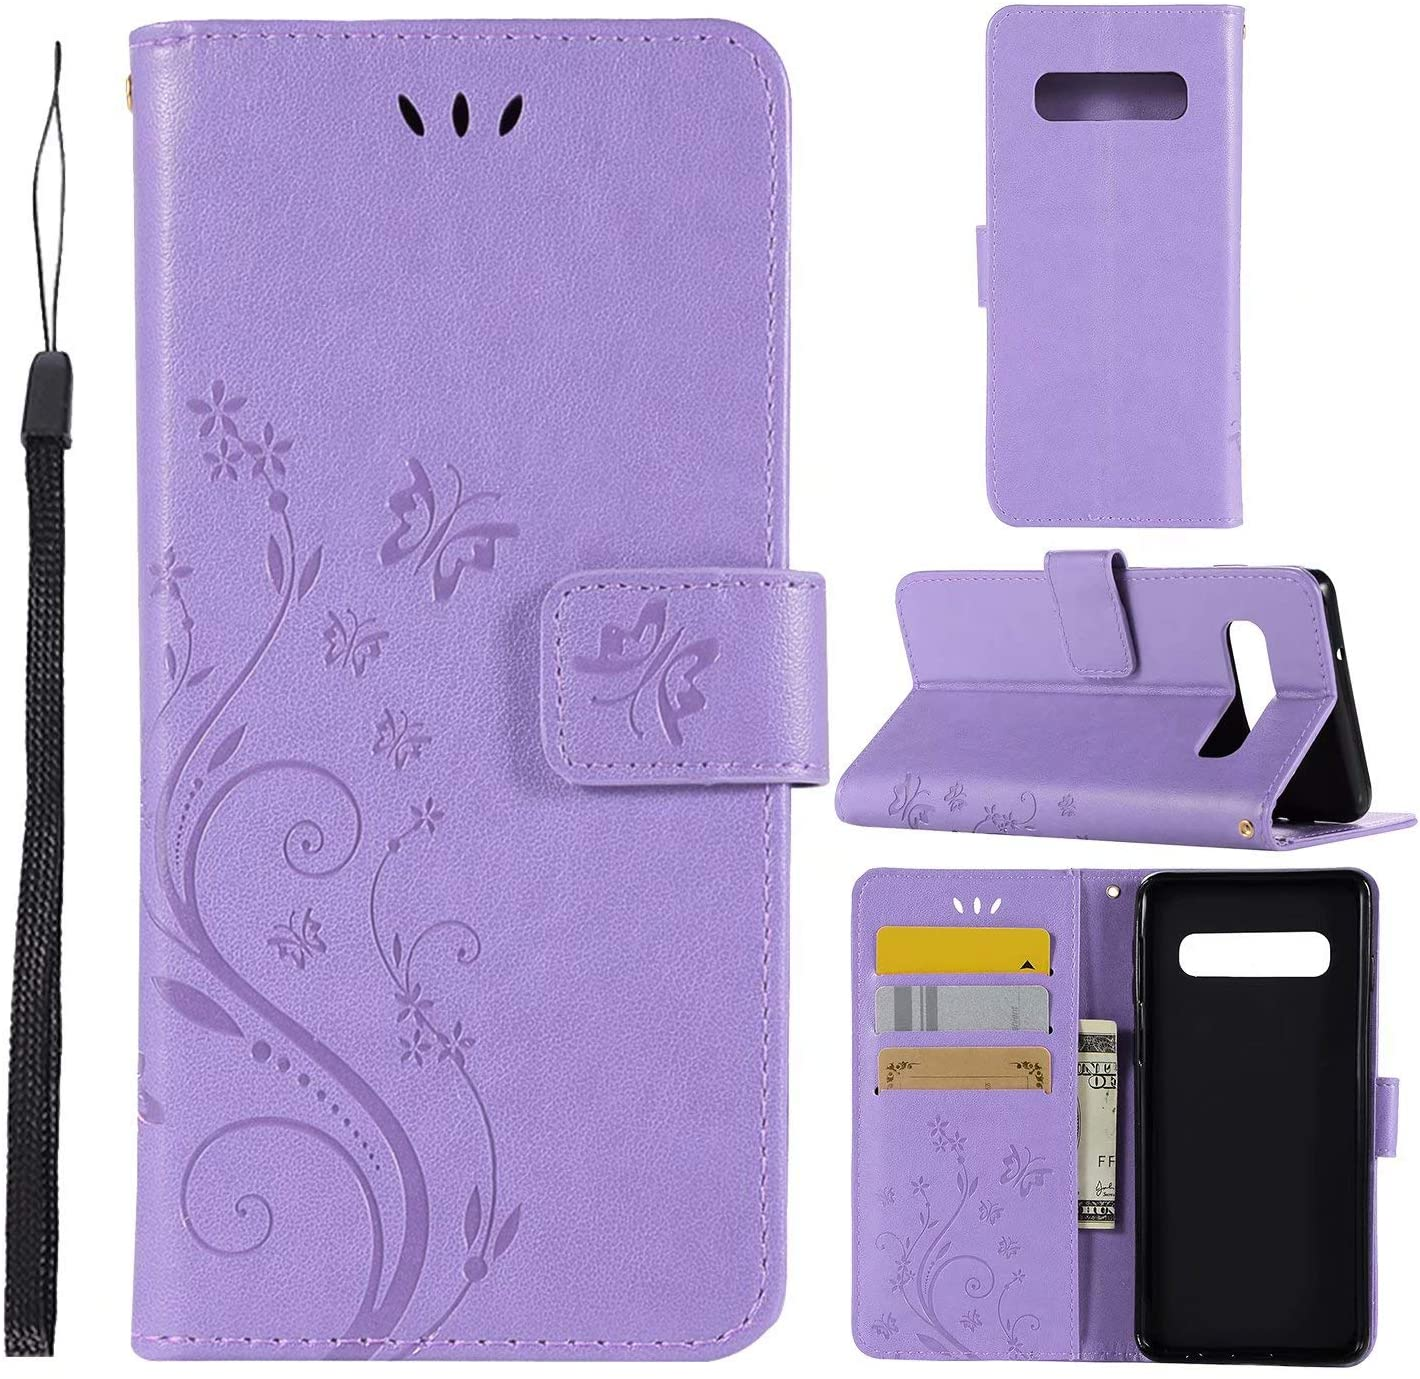 Galaxy S10 Case,Galaxy S10 Wallet Case,LW-Shop for Samxung Galaxy S10 PU Leather Case Magnetic Design Flip Leather Cover with Flower Butterfly Pattern (Light Purple, S10)